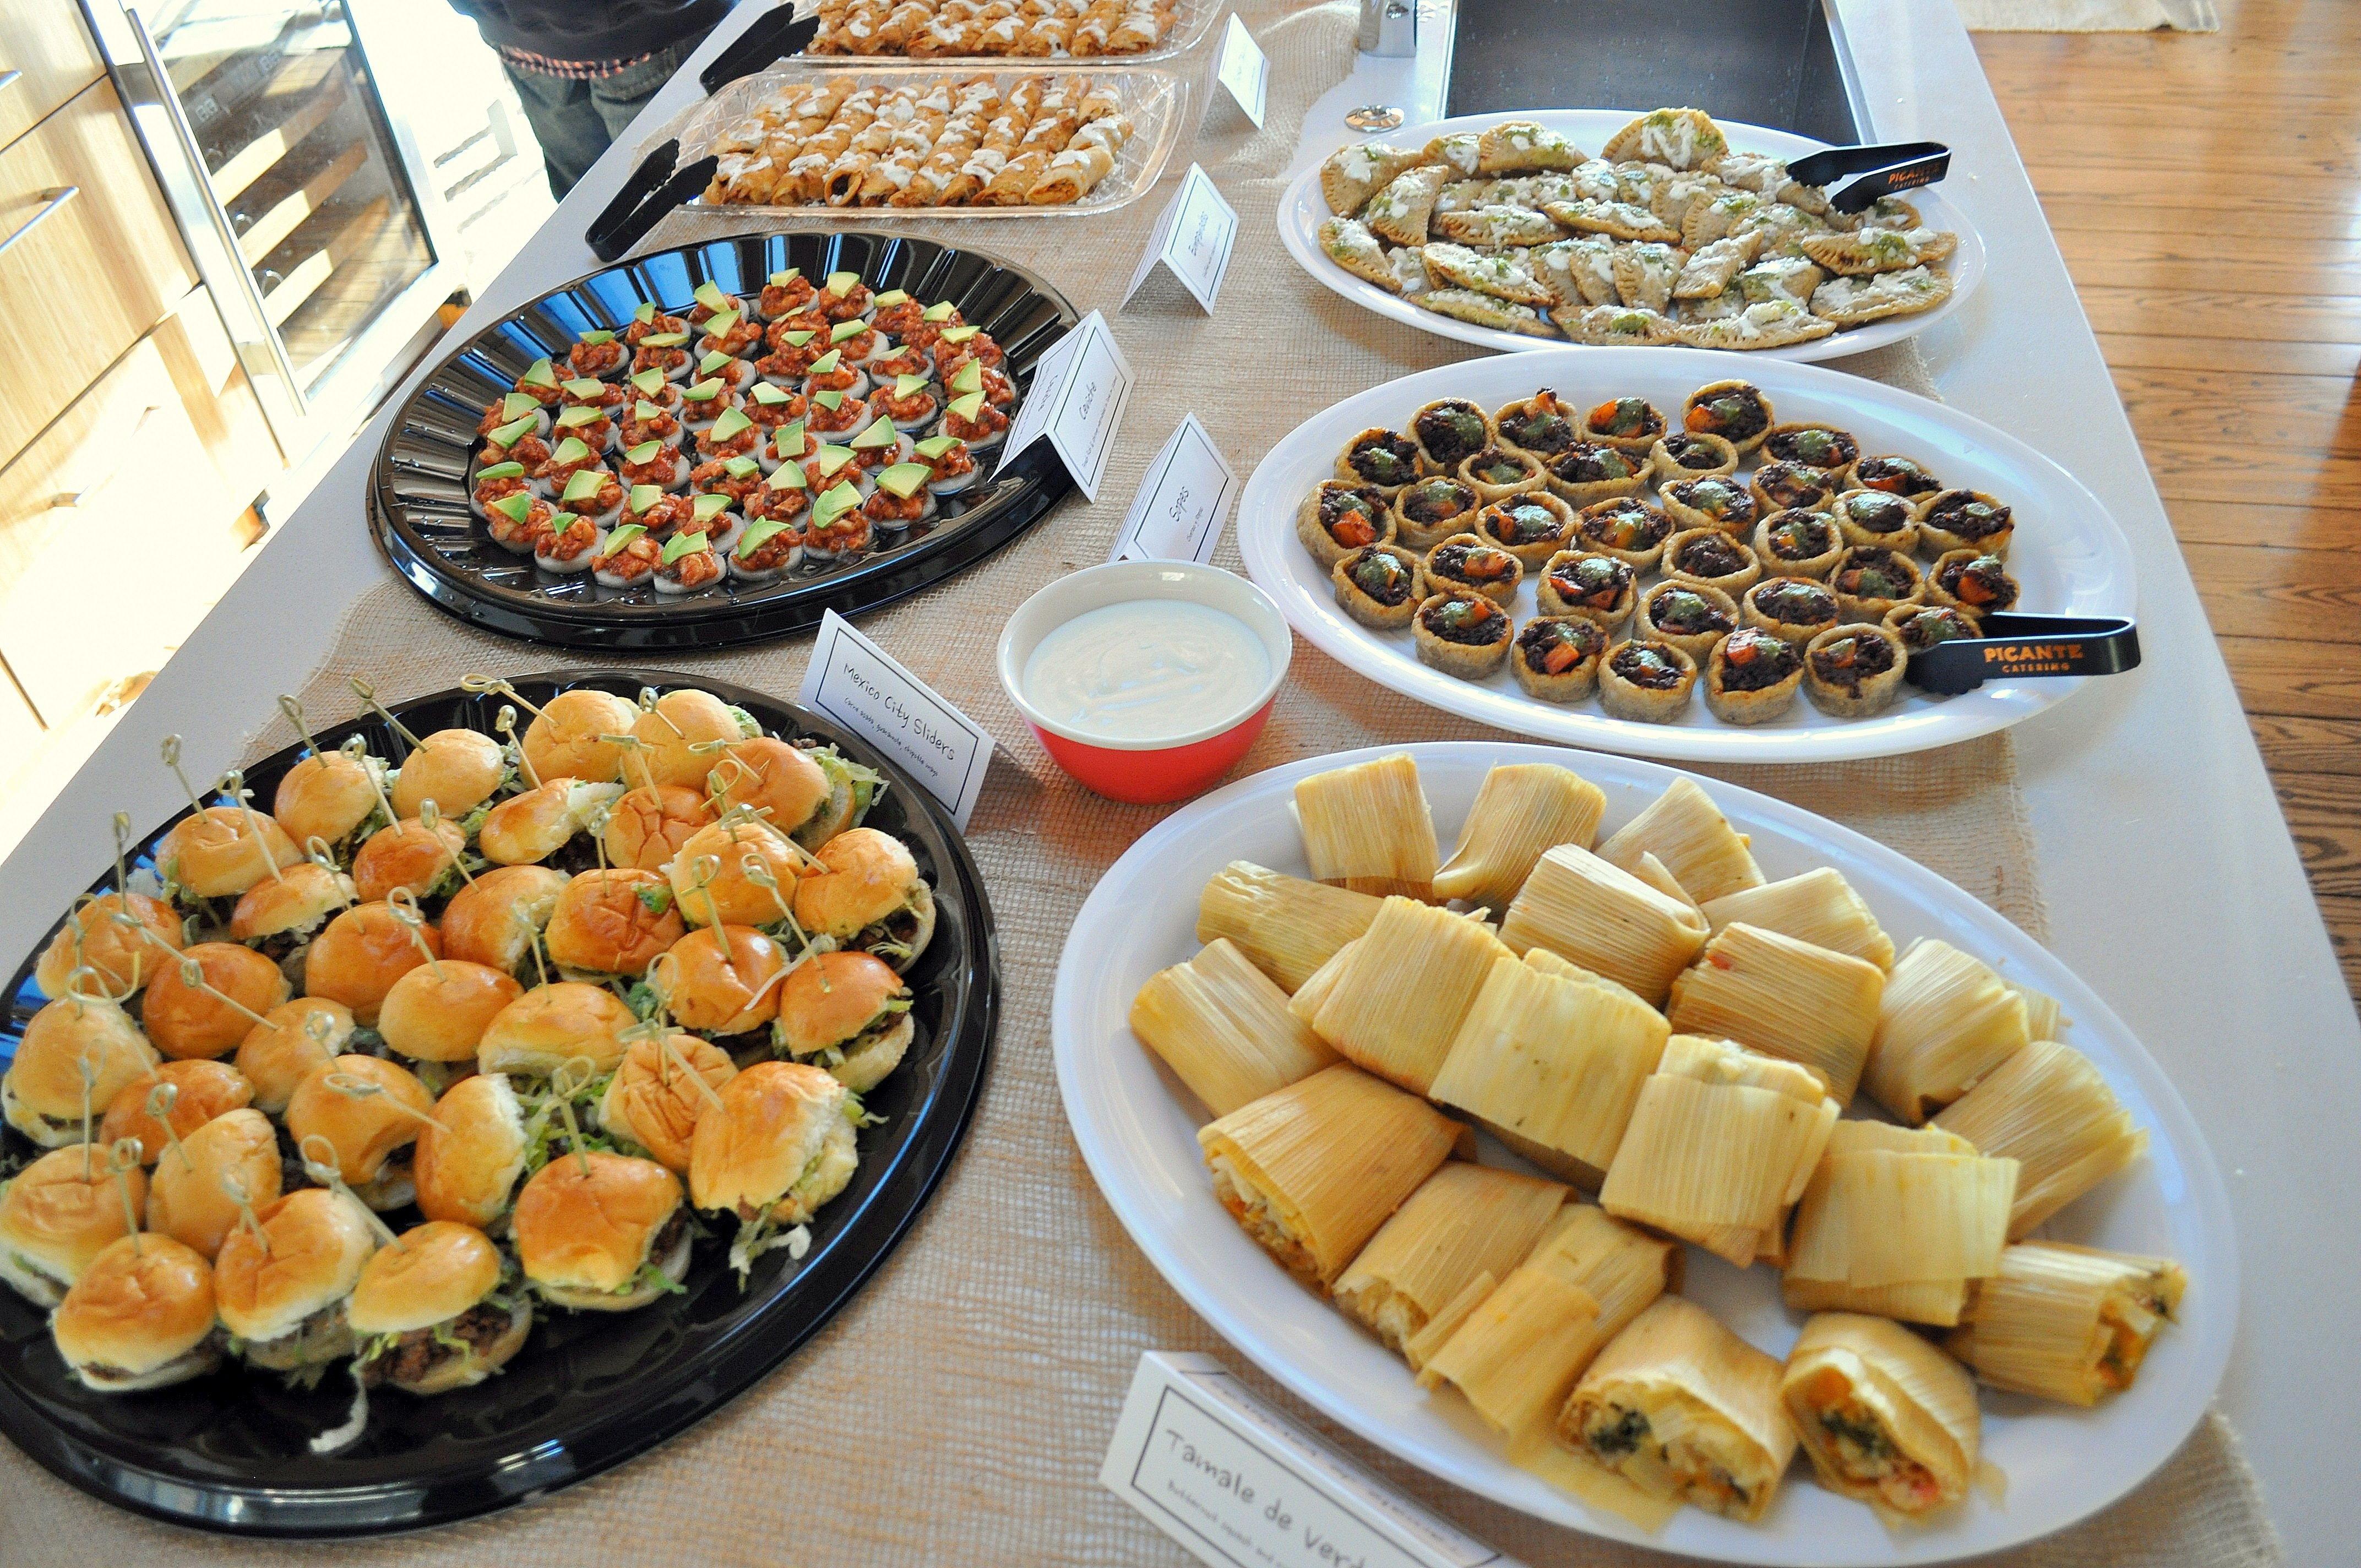 10 Nice Food Ideas For Baby Showers good food ideas for baby shower brunch recipe menu on budget girl 2020